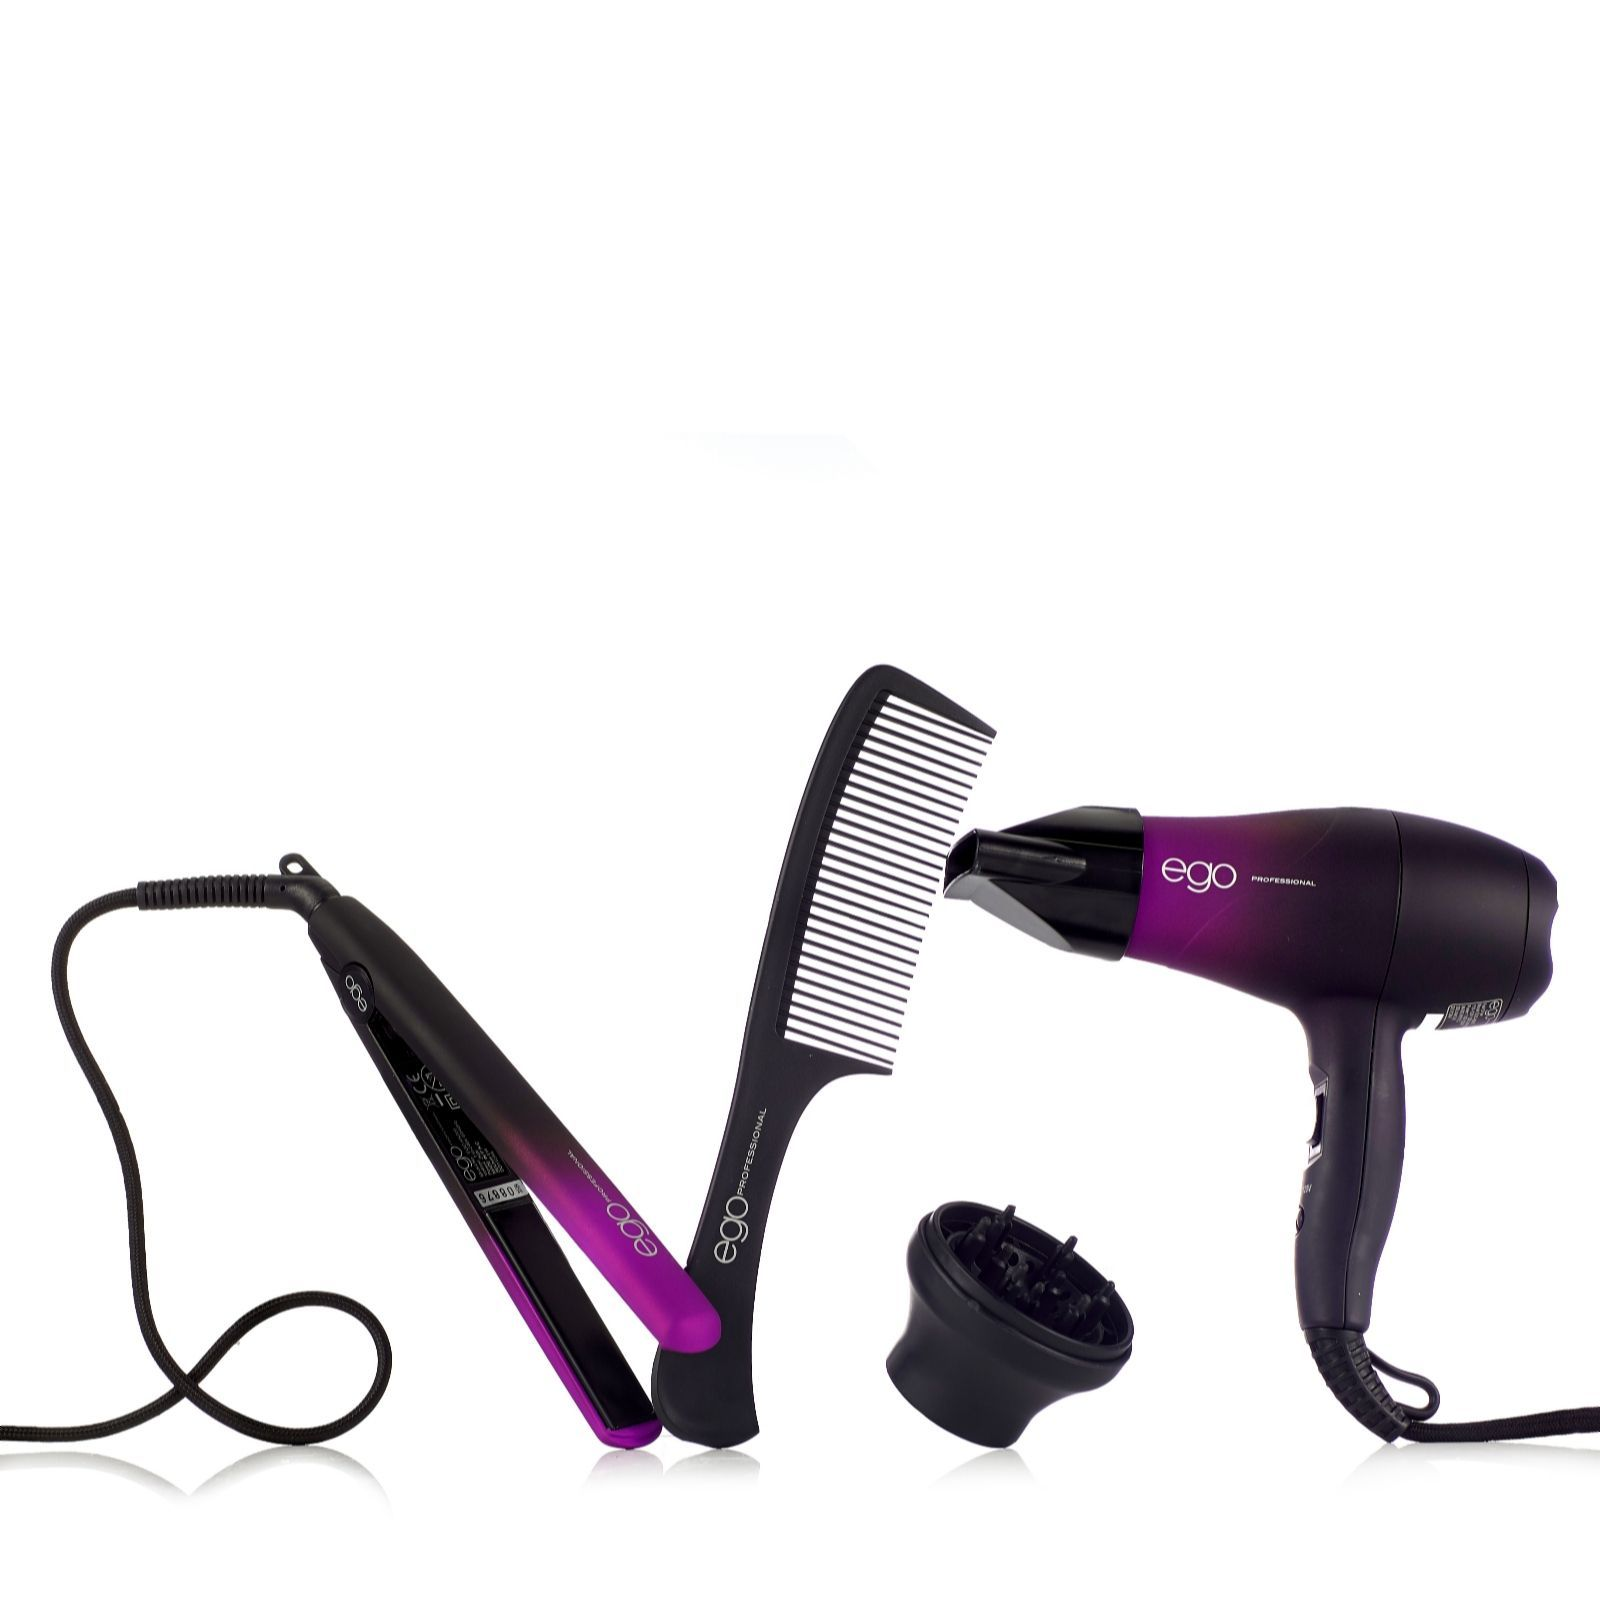 401512 Ego Trip Brights Edition Hairdryer Straightener Set Qvc Price 39 50 P